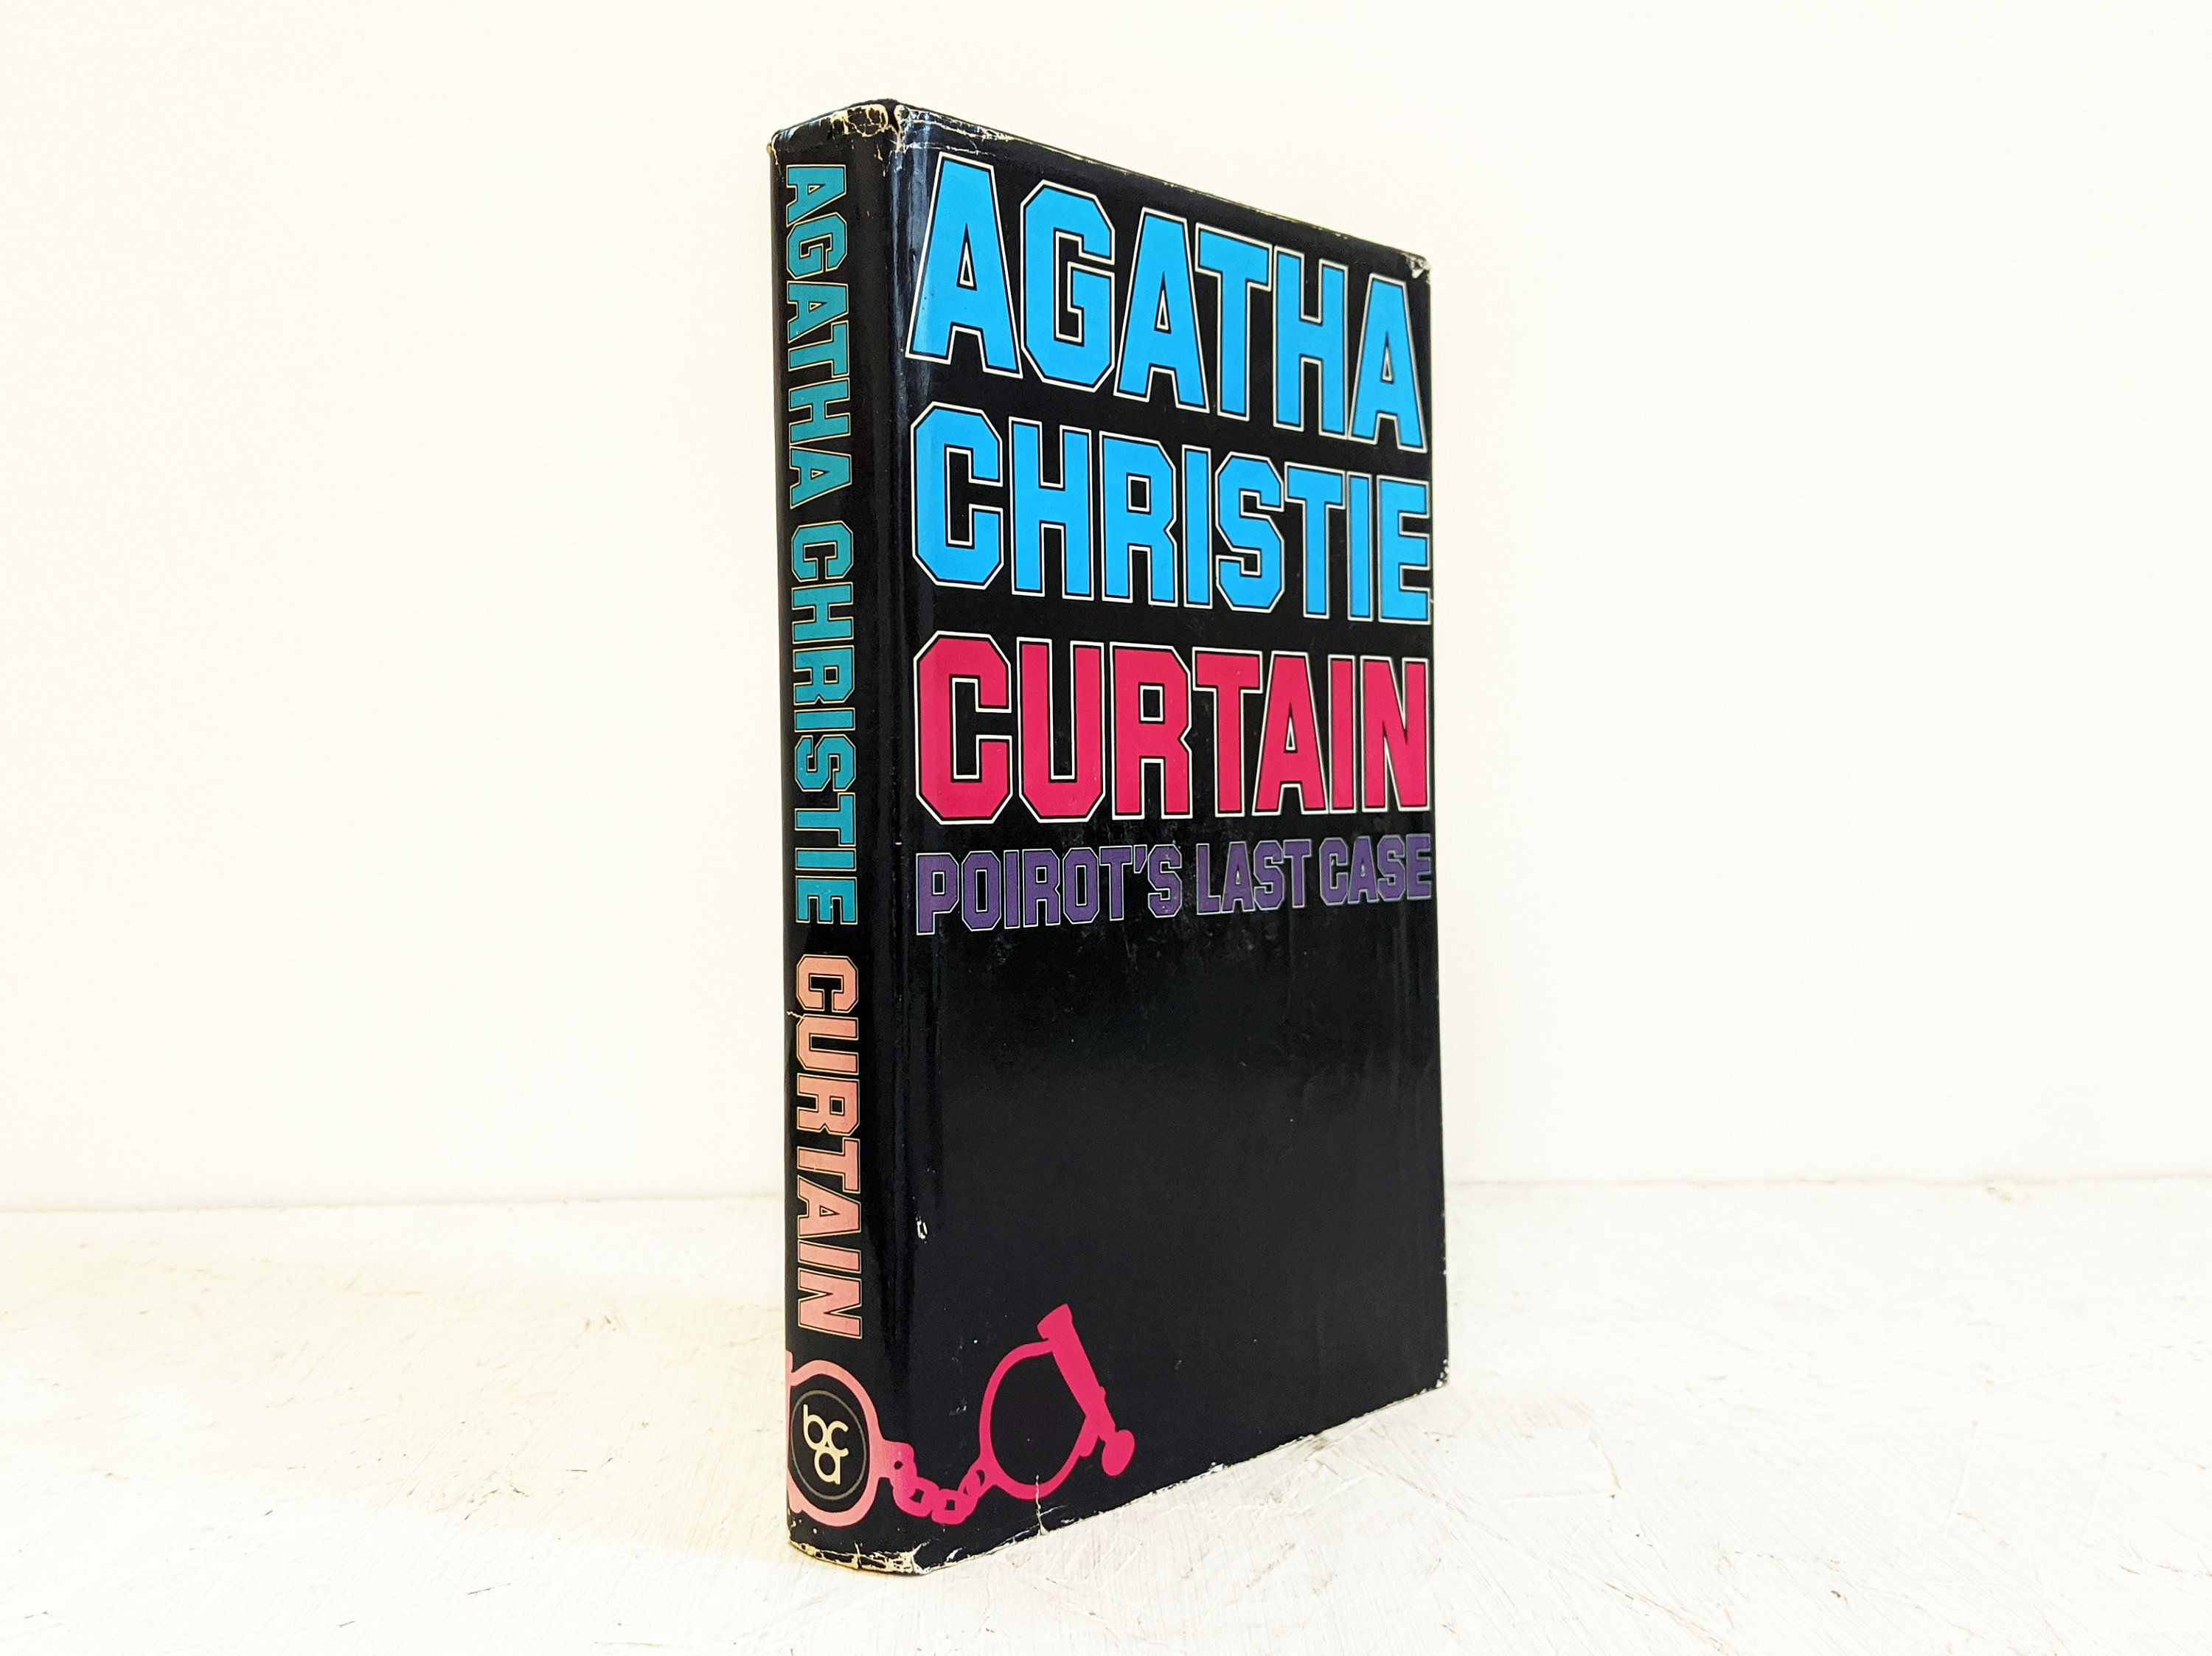 Agatha Christie Curtain Poirots Last Case Book Club Etsy In 2020 Agatha Christie Book Gifts Agatha